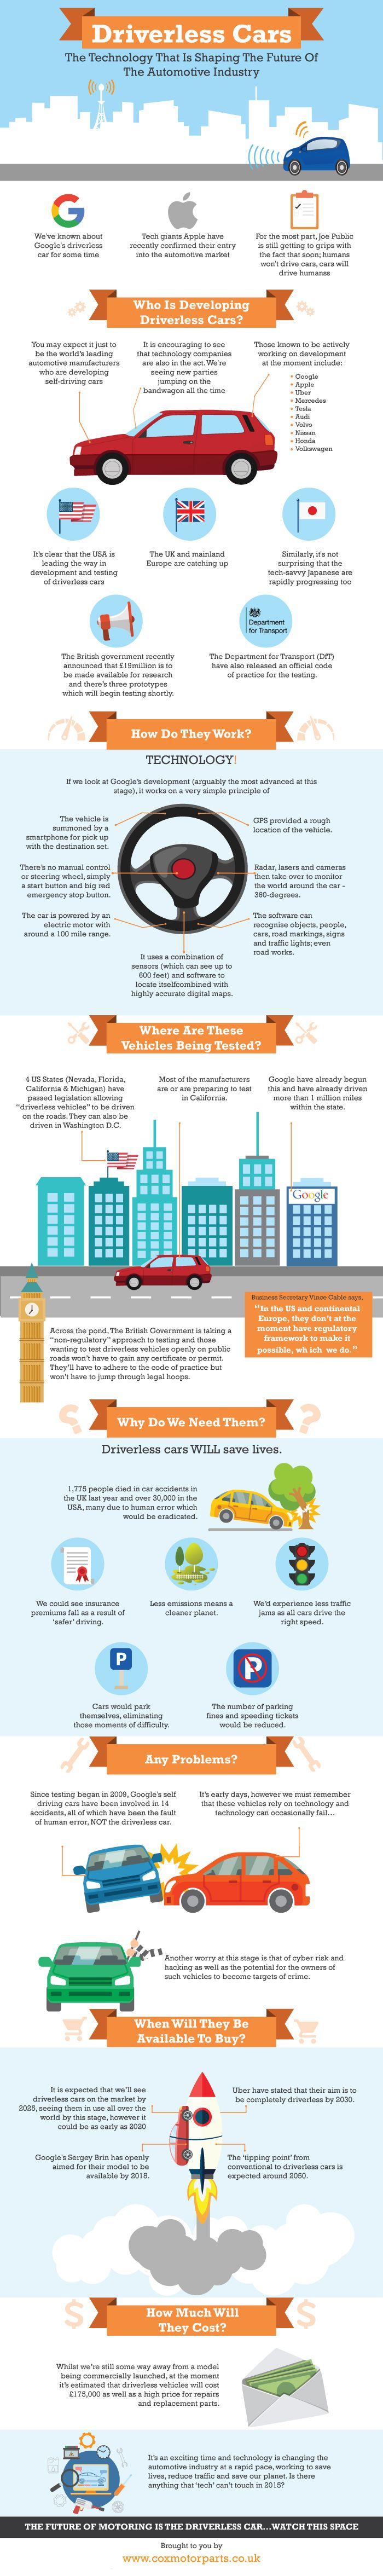 Driverless Cars – The Technology That Is Shaping The Future Of The Automotive Industry #infographic #Technology #Cars